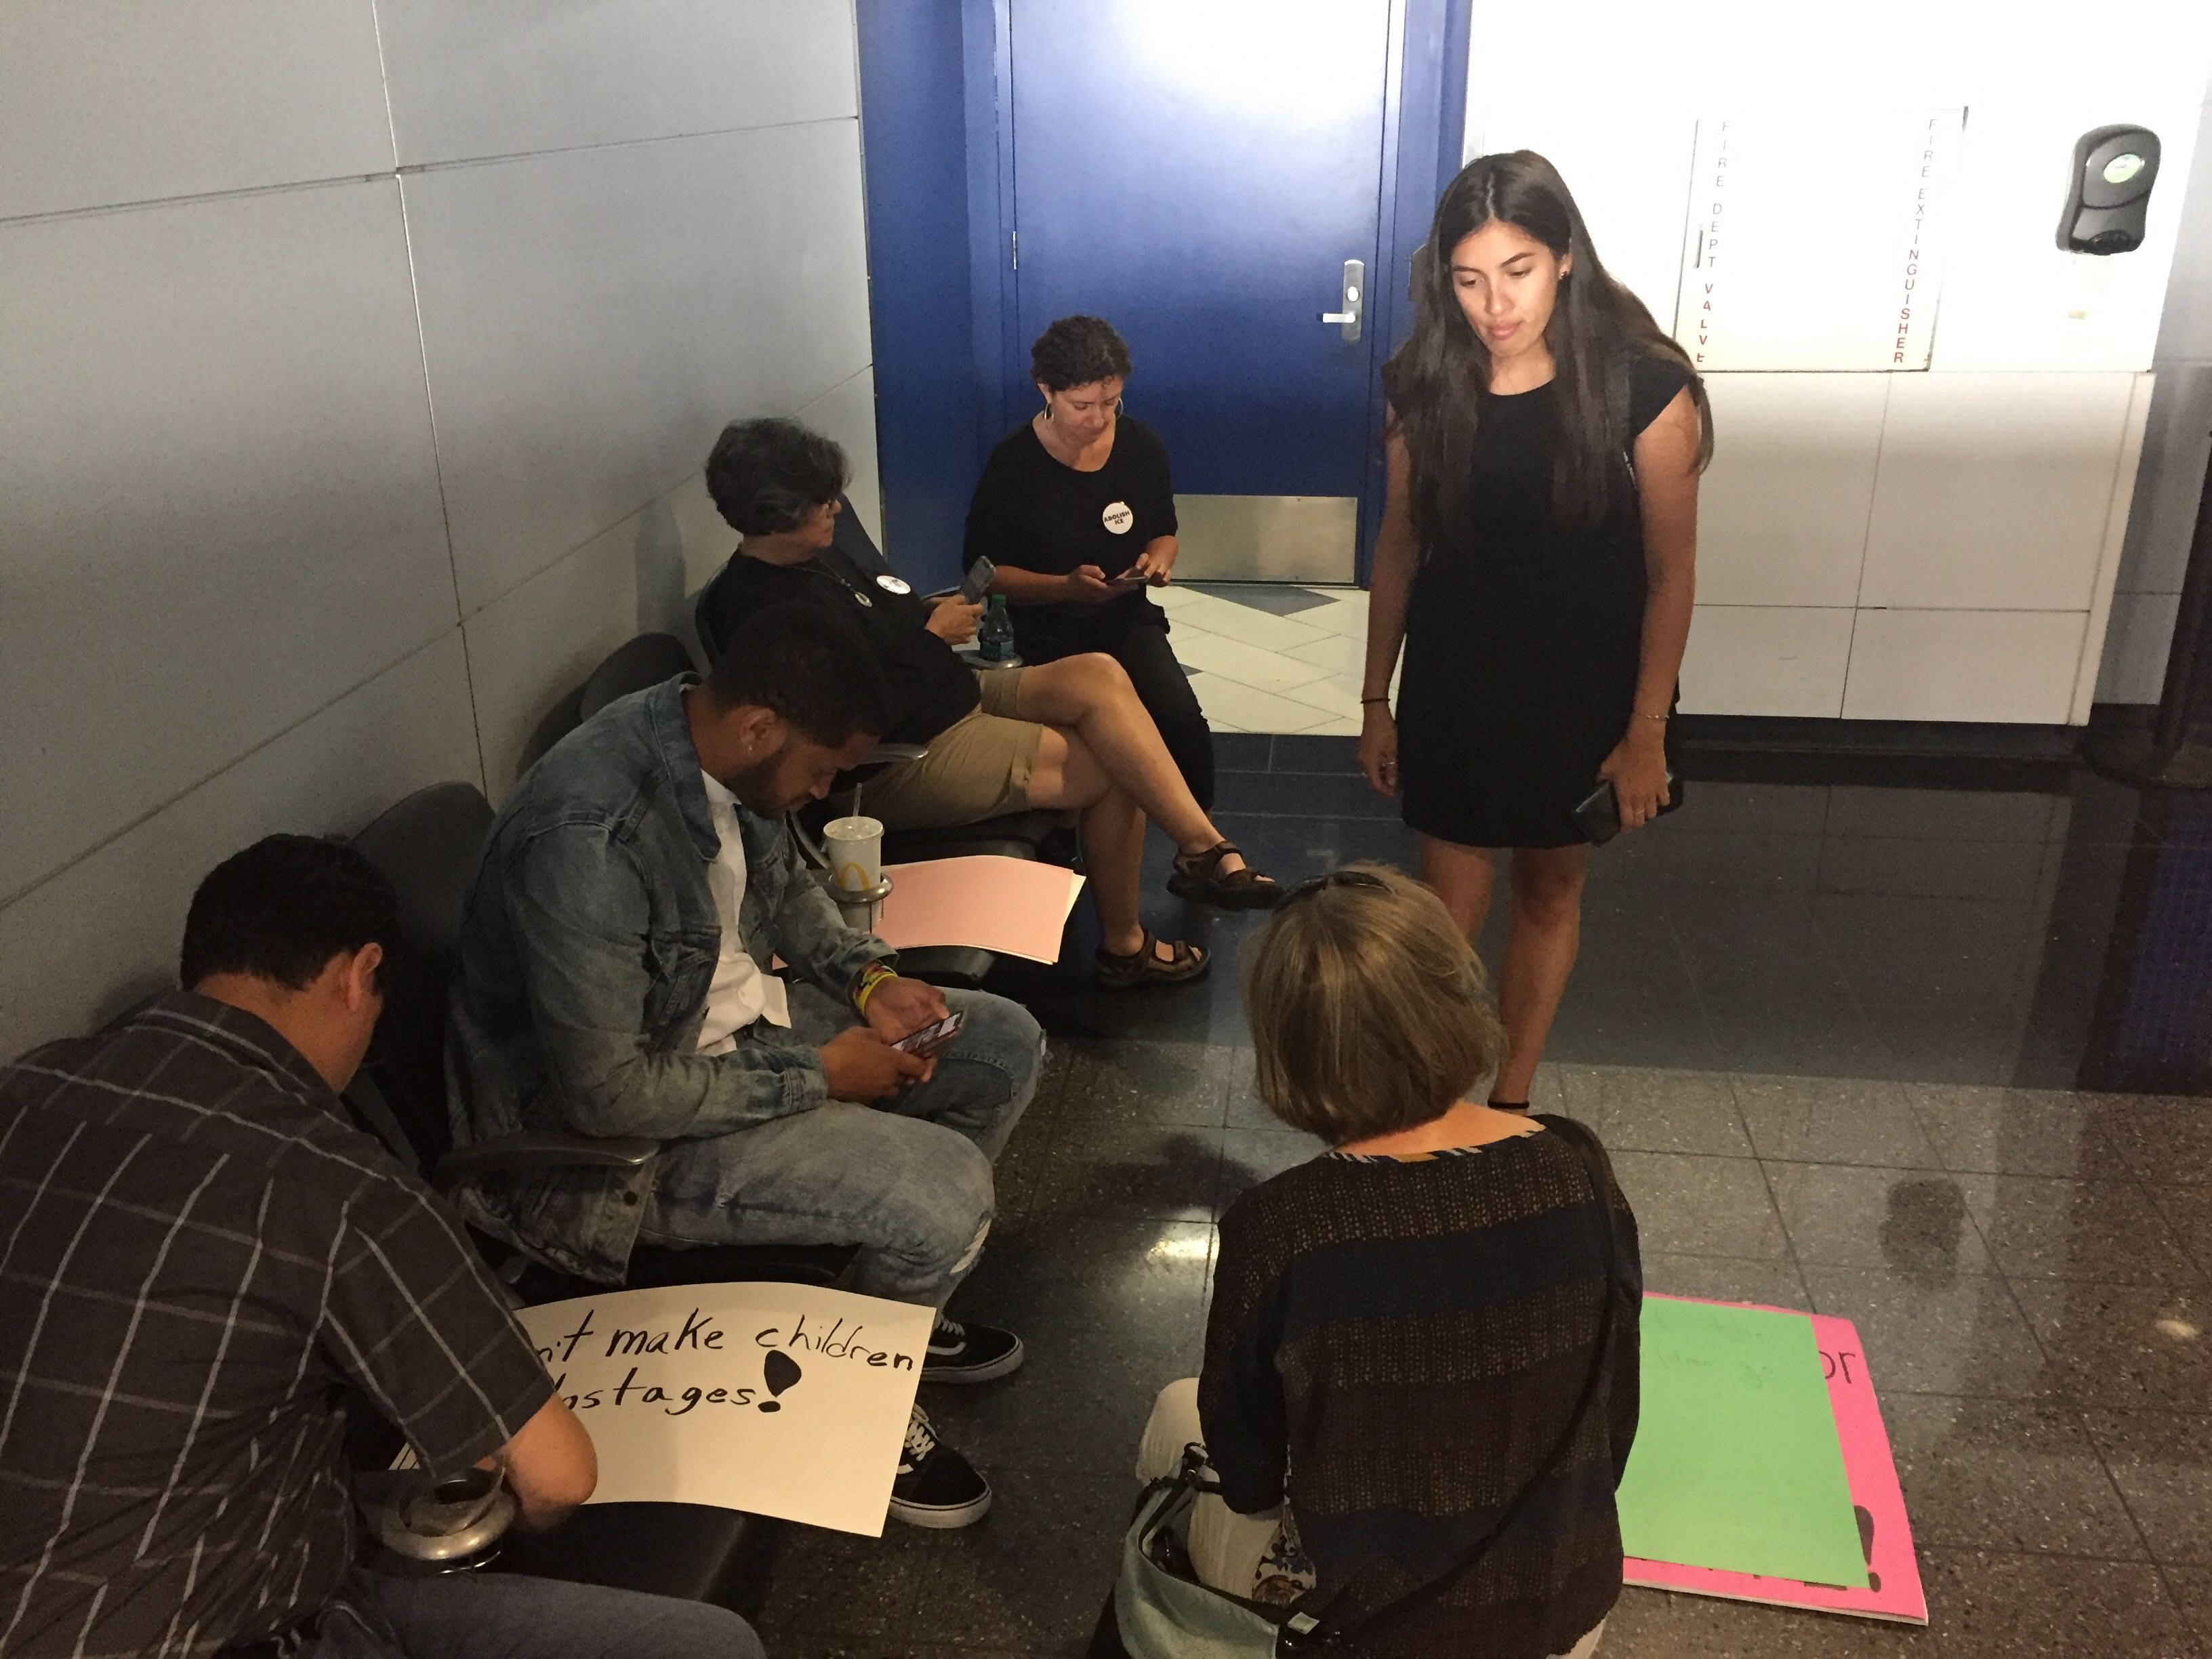 Detention Of Children At O'Hare Sparks Rapid Response